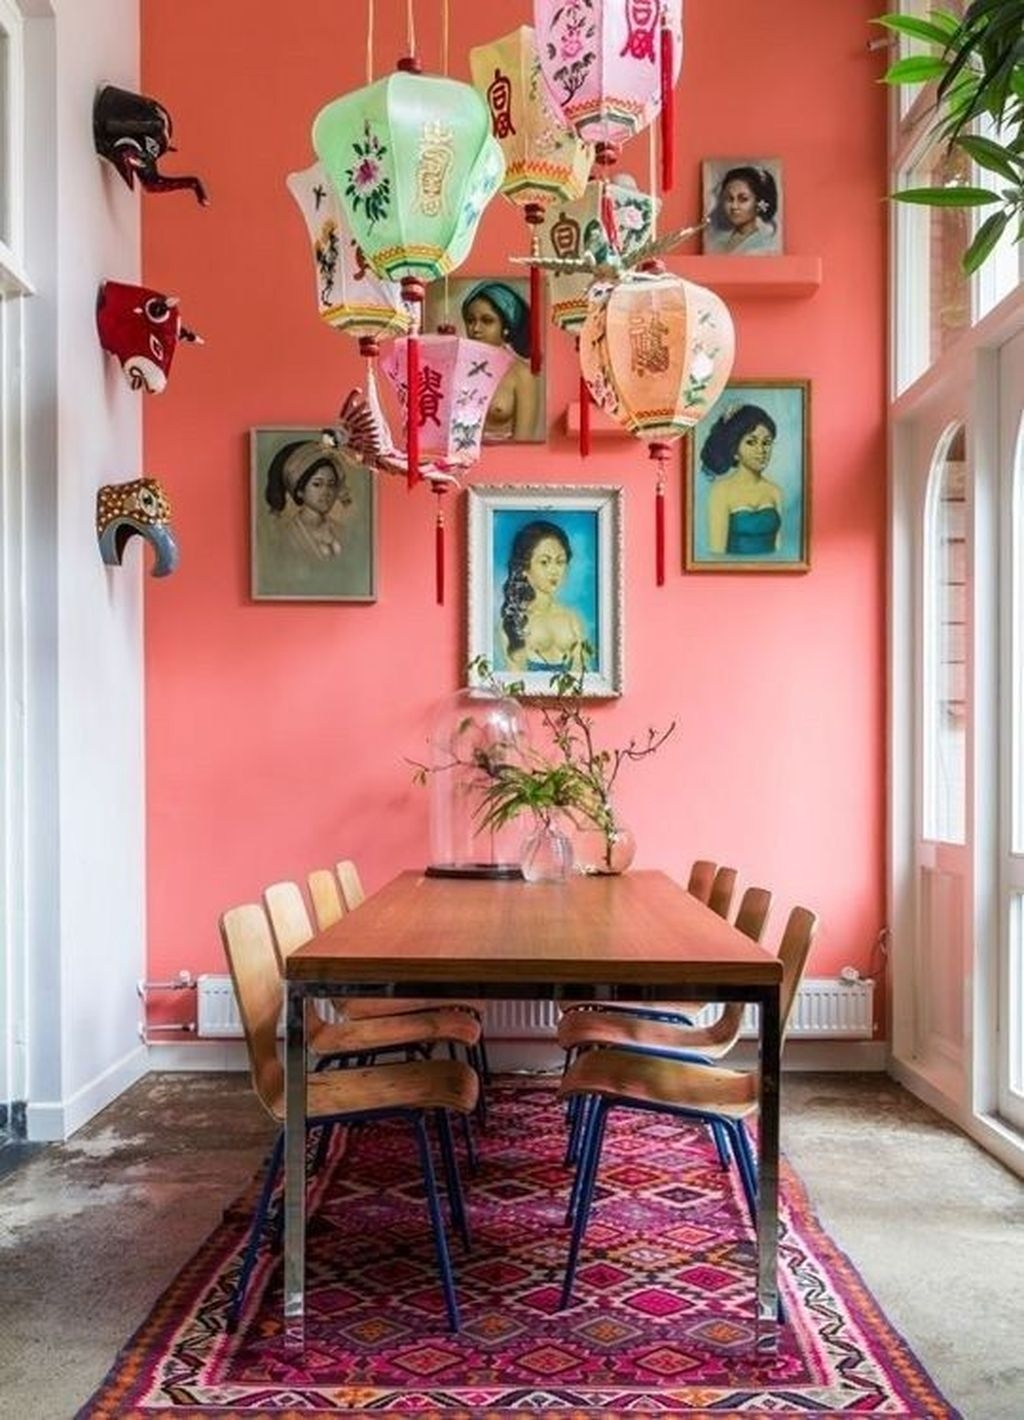 Unordinary Dining Room Design Ideas With Bohemian Style43